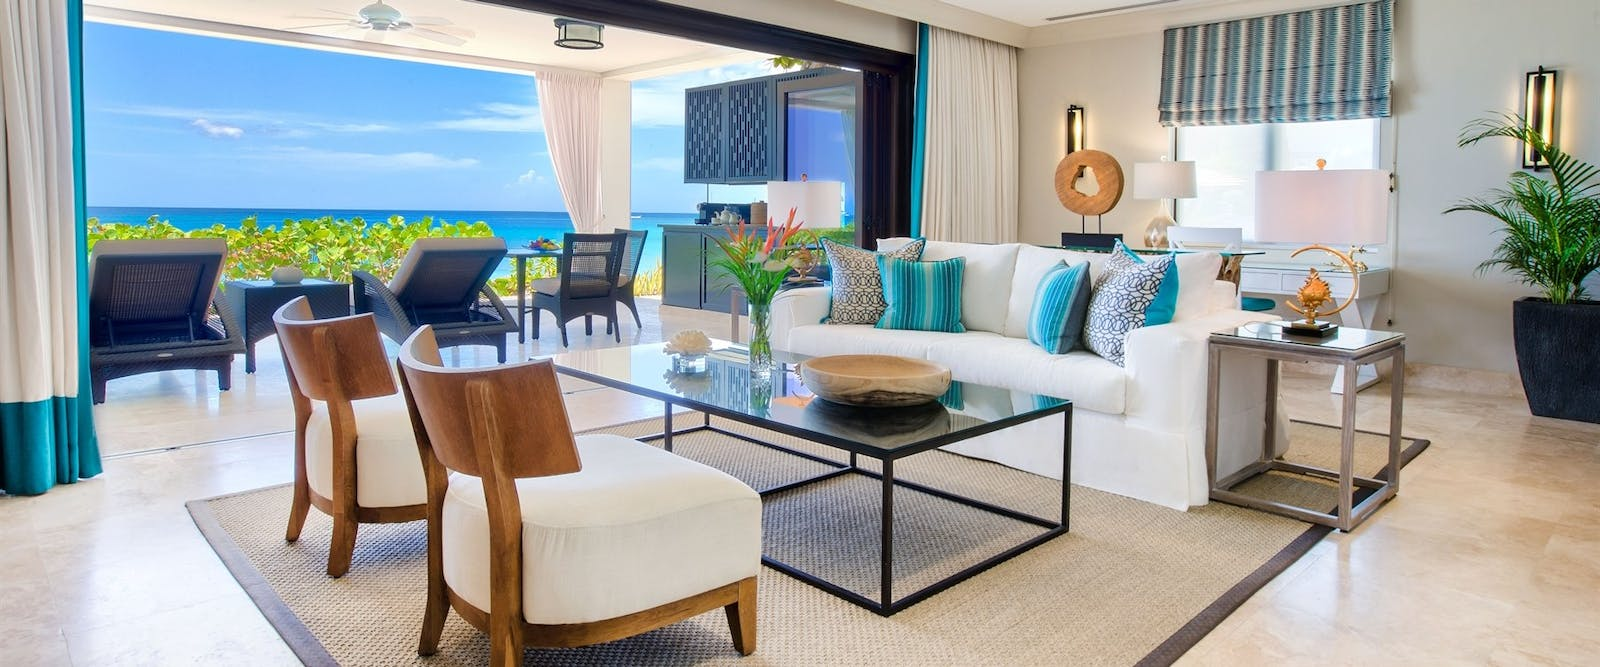 Driftwood Beach House Suite Living Room at The Sandpiper, Barbados